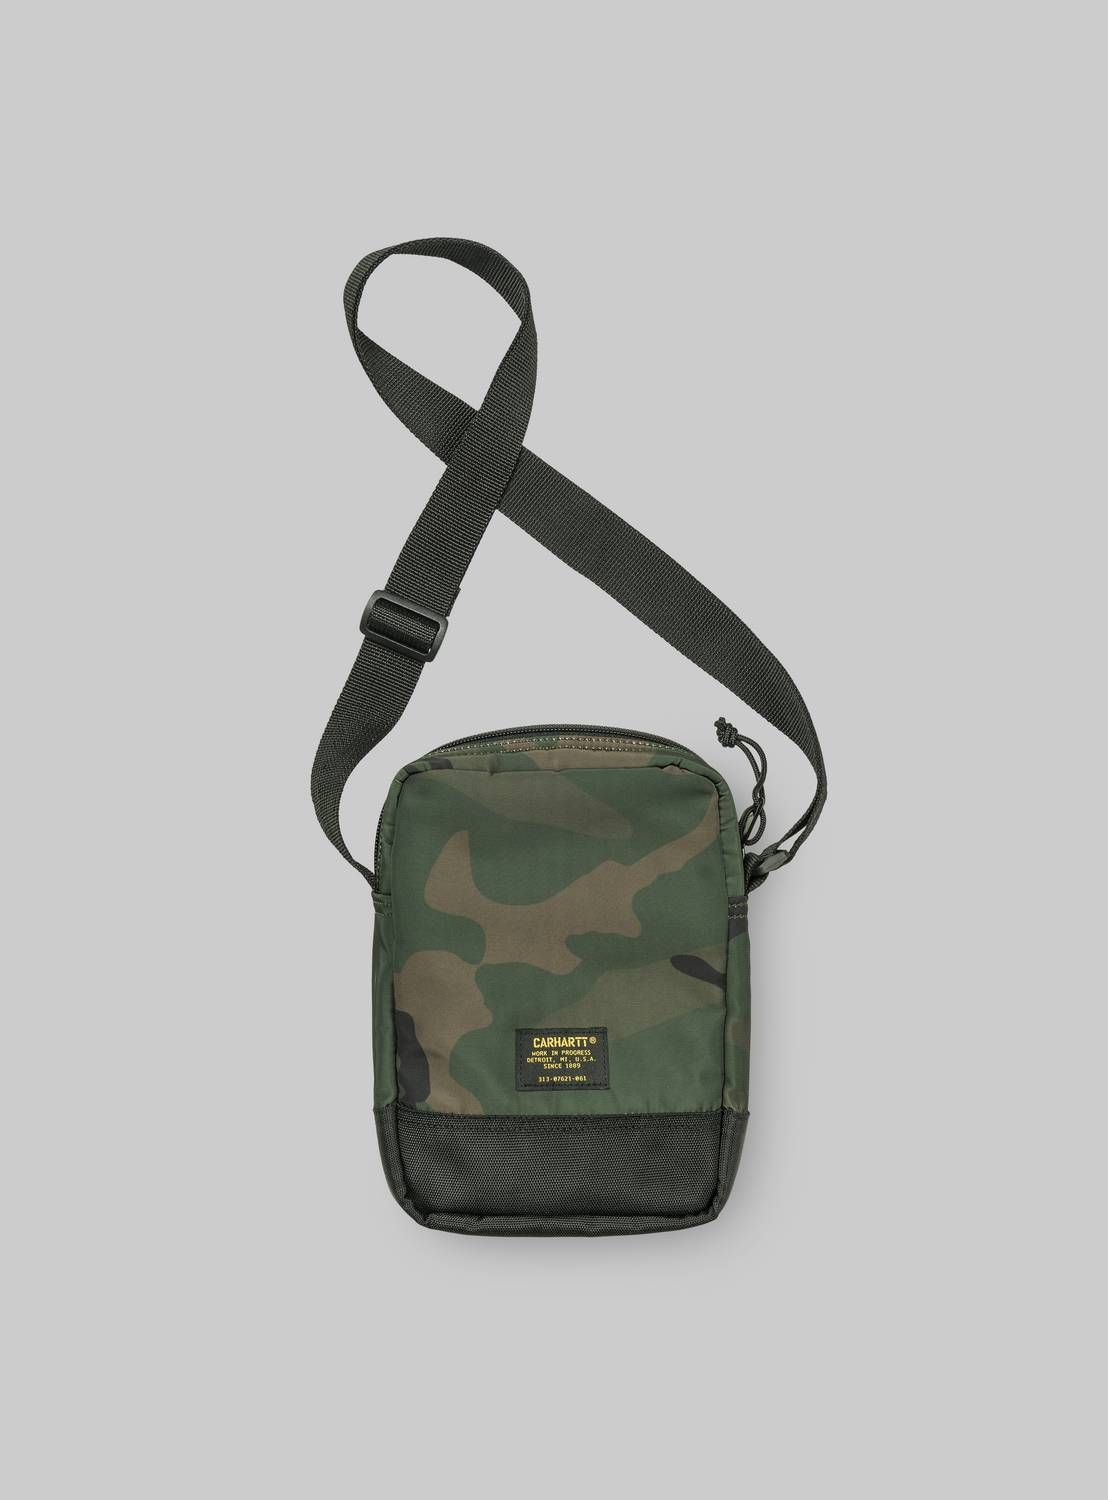 74576f80d7c3 Carhartt WIP Military Shoulder Bag